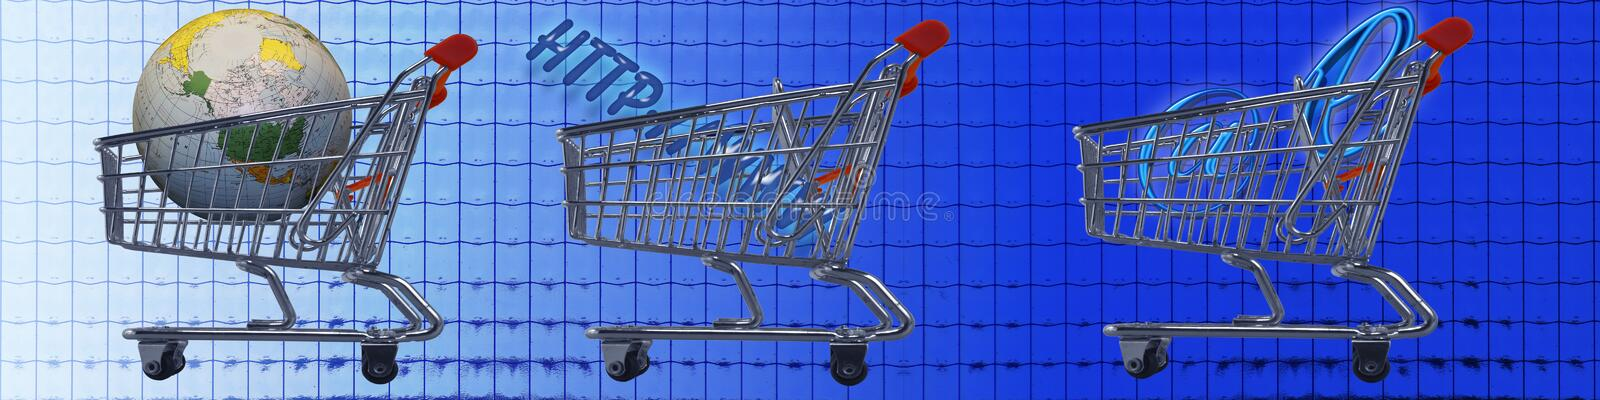 Shopping carts WW e-commerce. This banner / header has a background with grid patterns. Each of the shopping carts carries different Internet related goods, like royalty free illustration